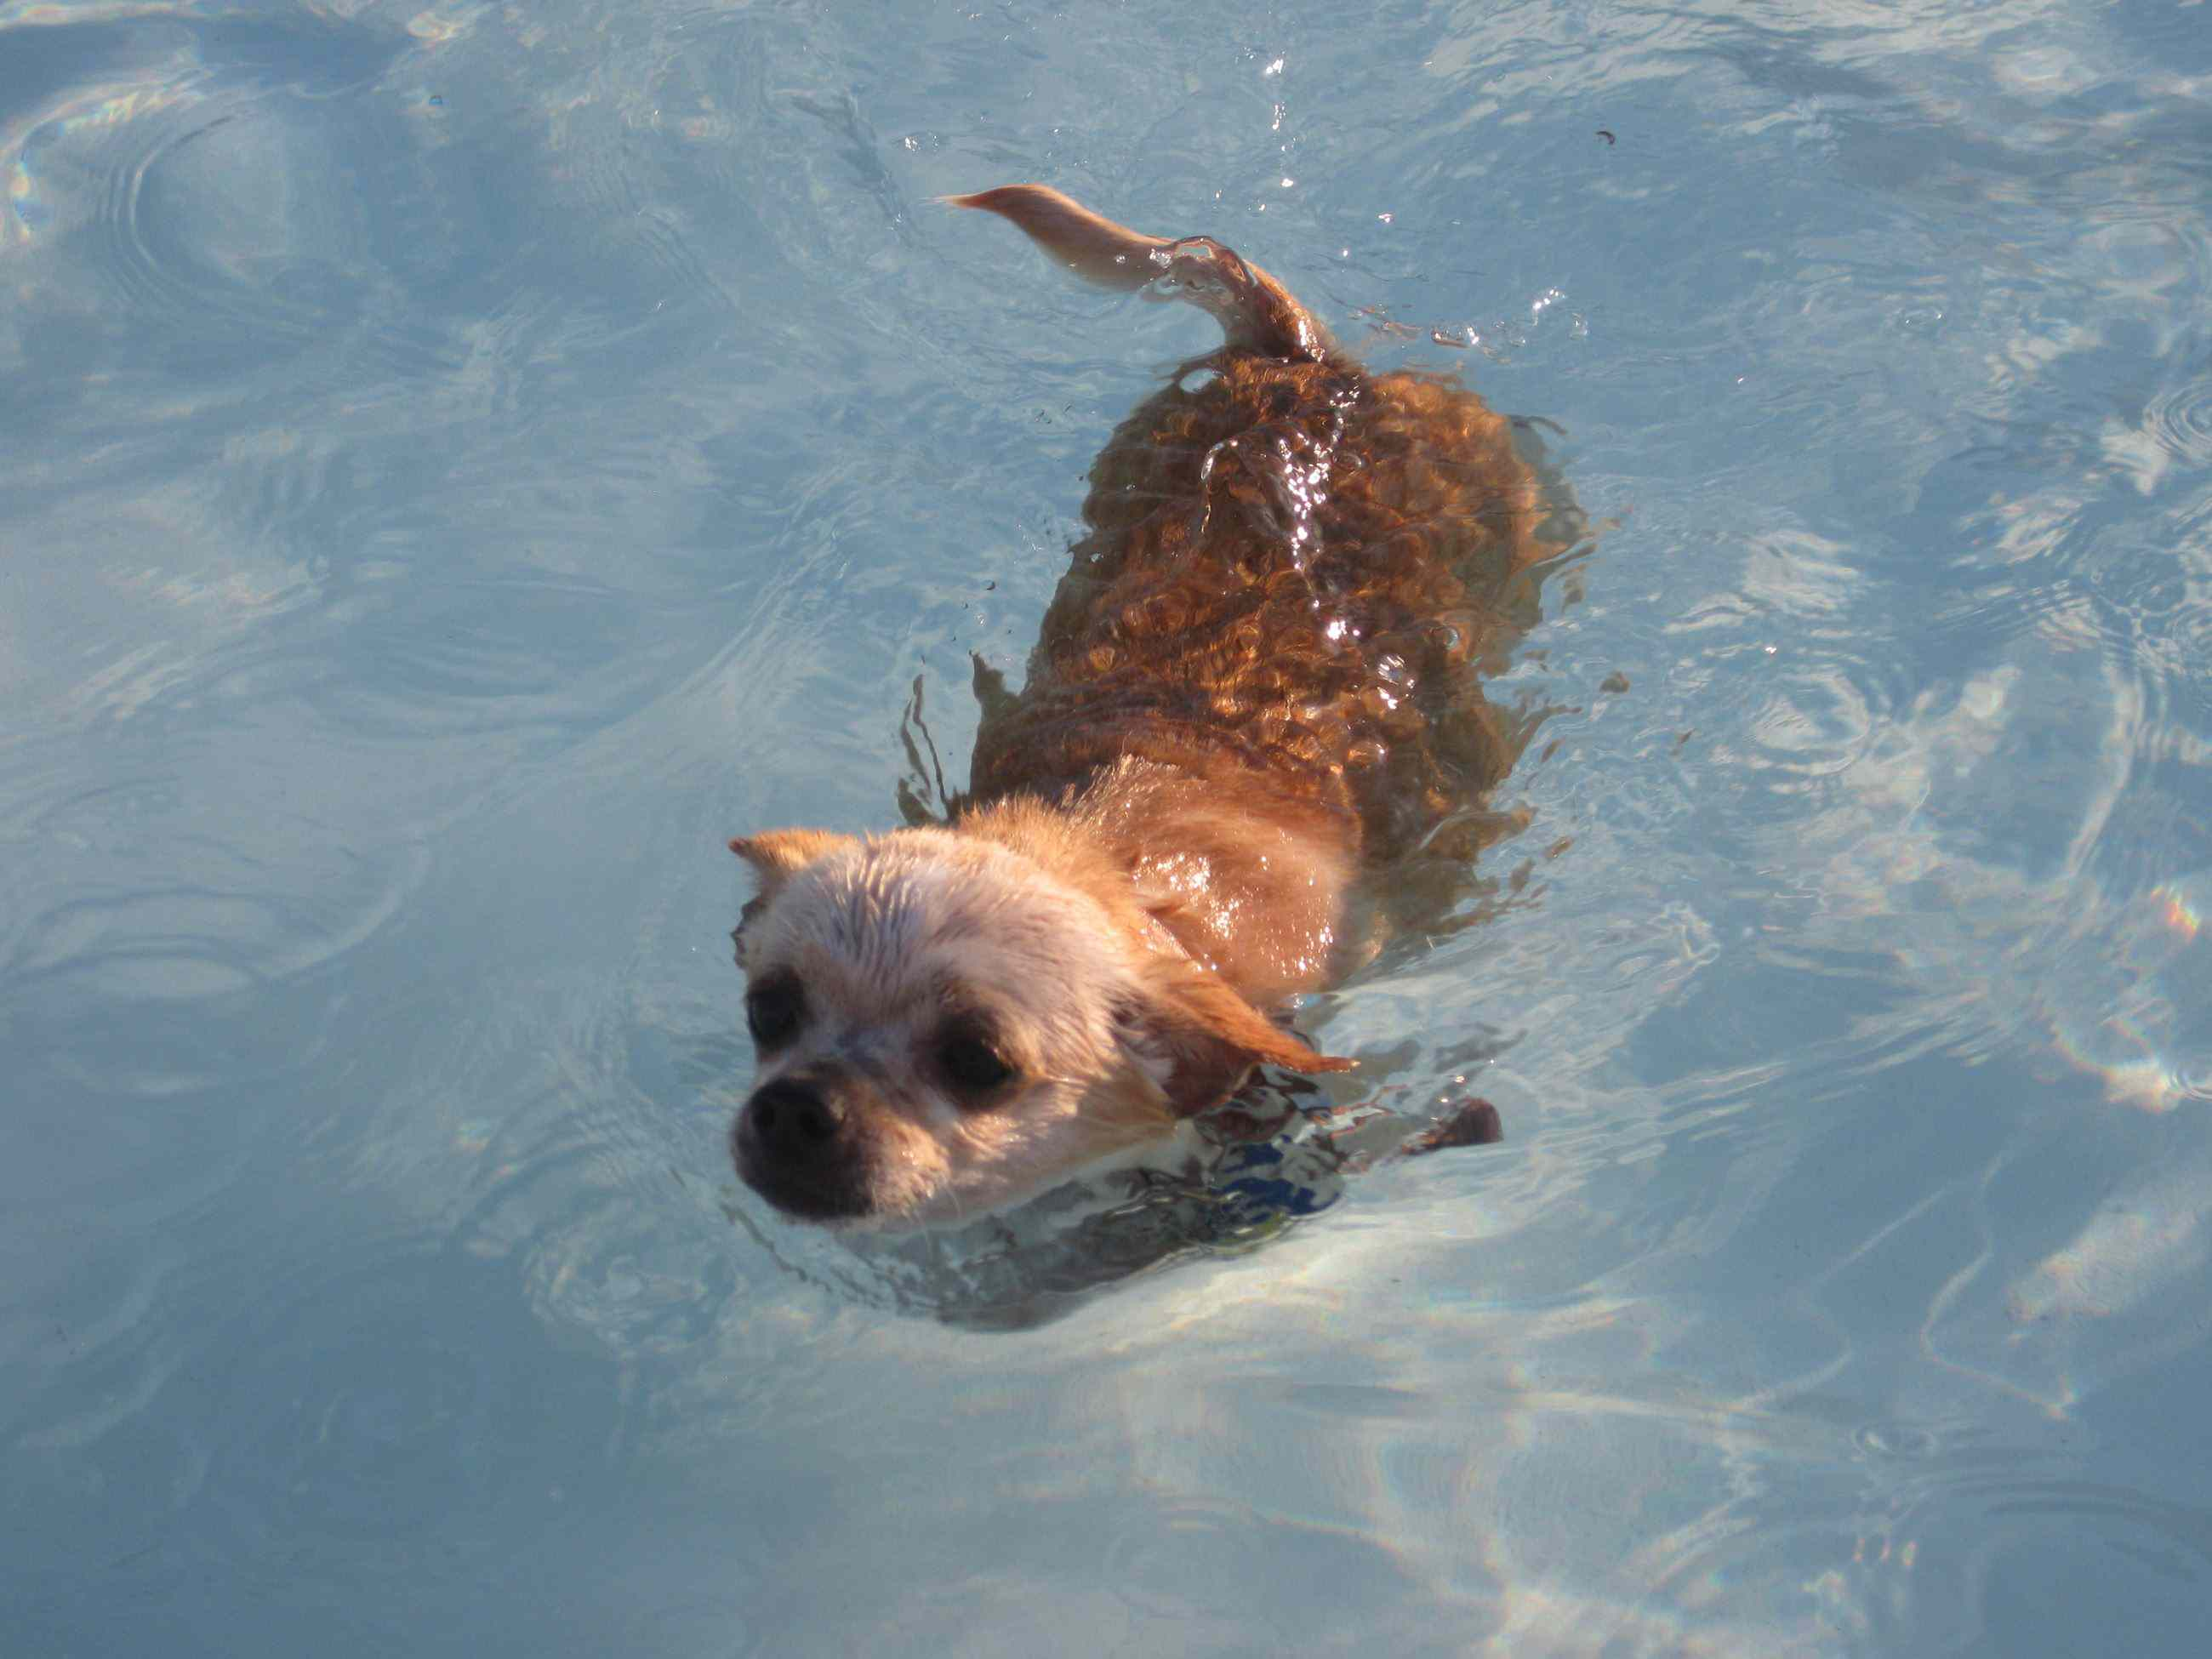 Midwest City's Doggie Paddle